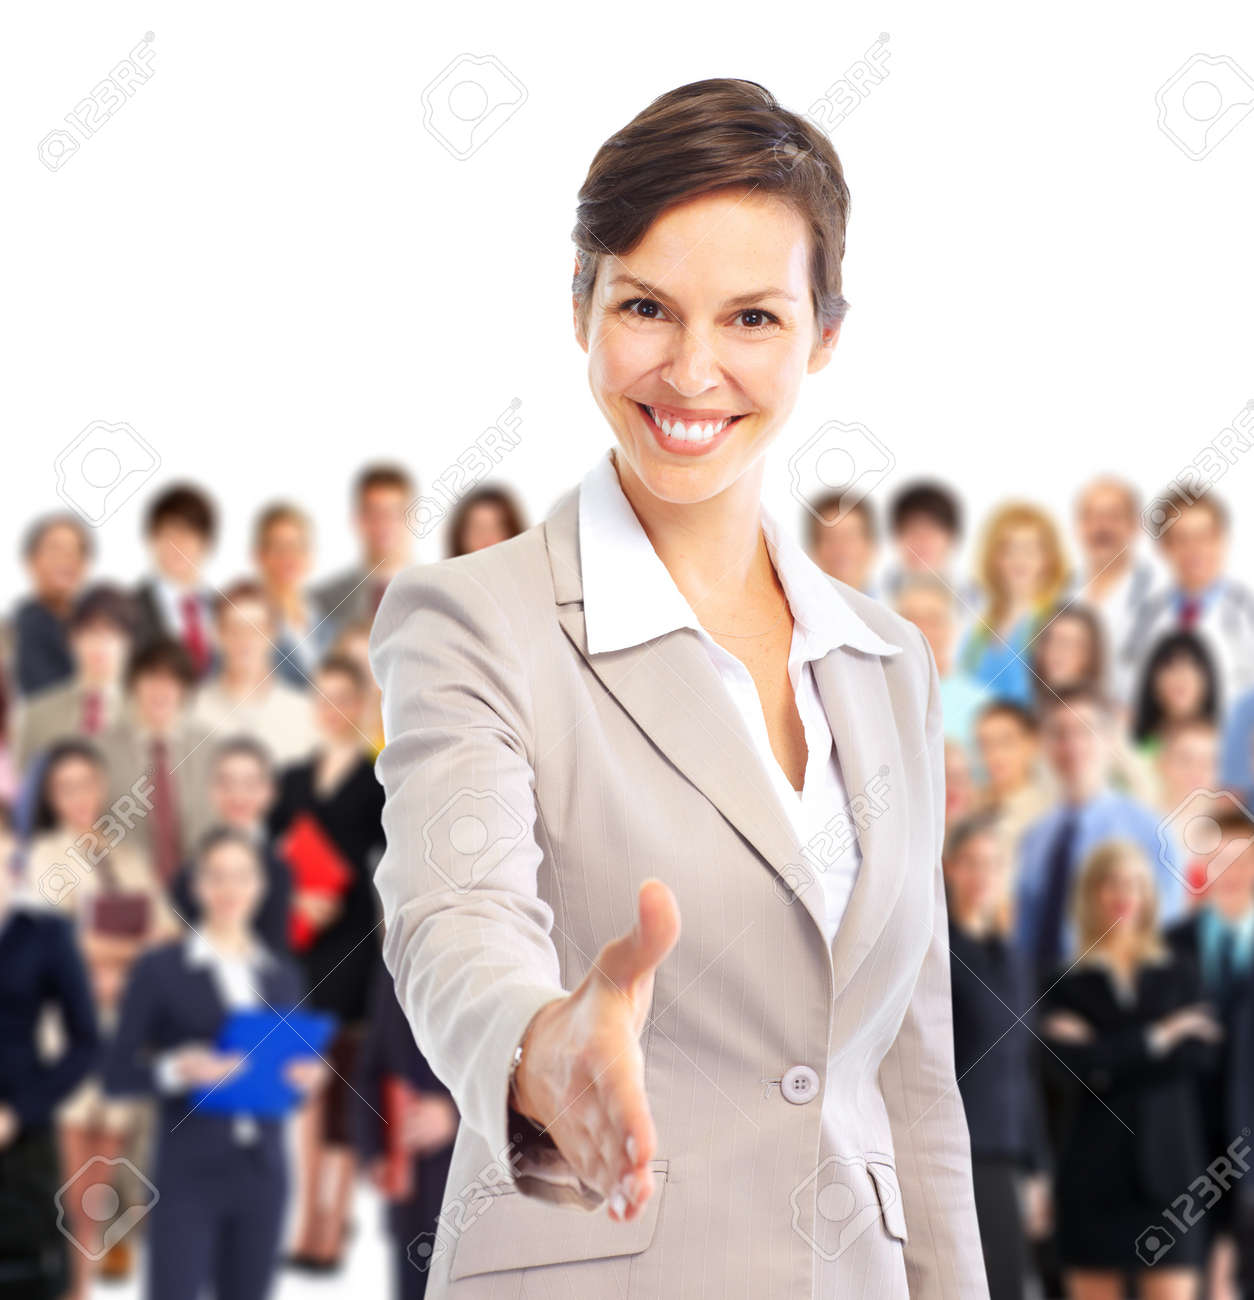 Human resources. Businesswoman and a large group of business people. Stock Photo - 8863902